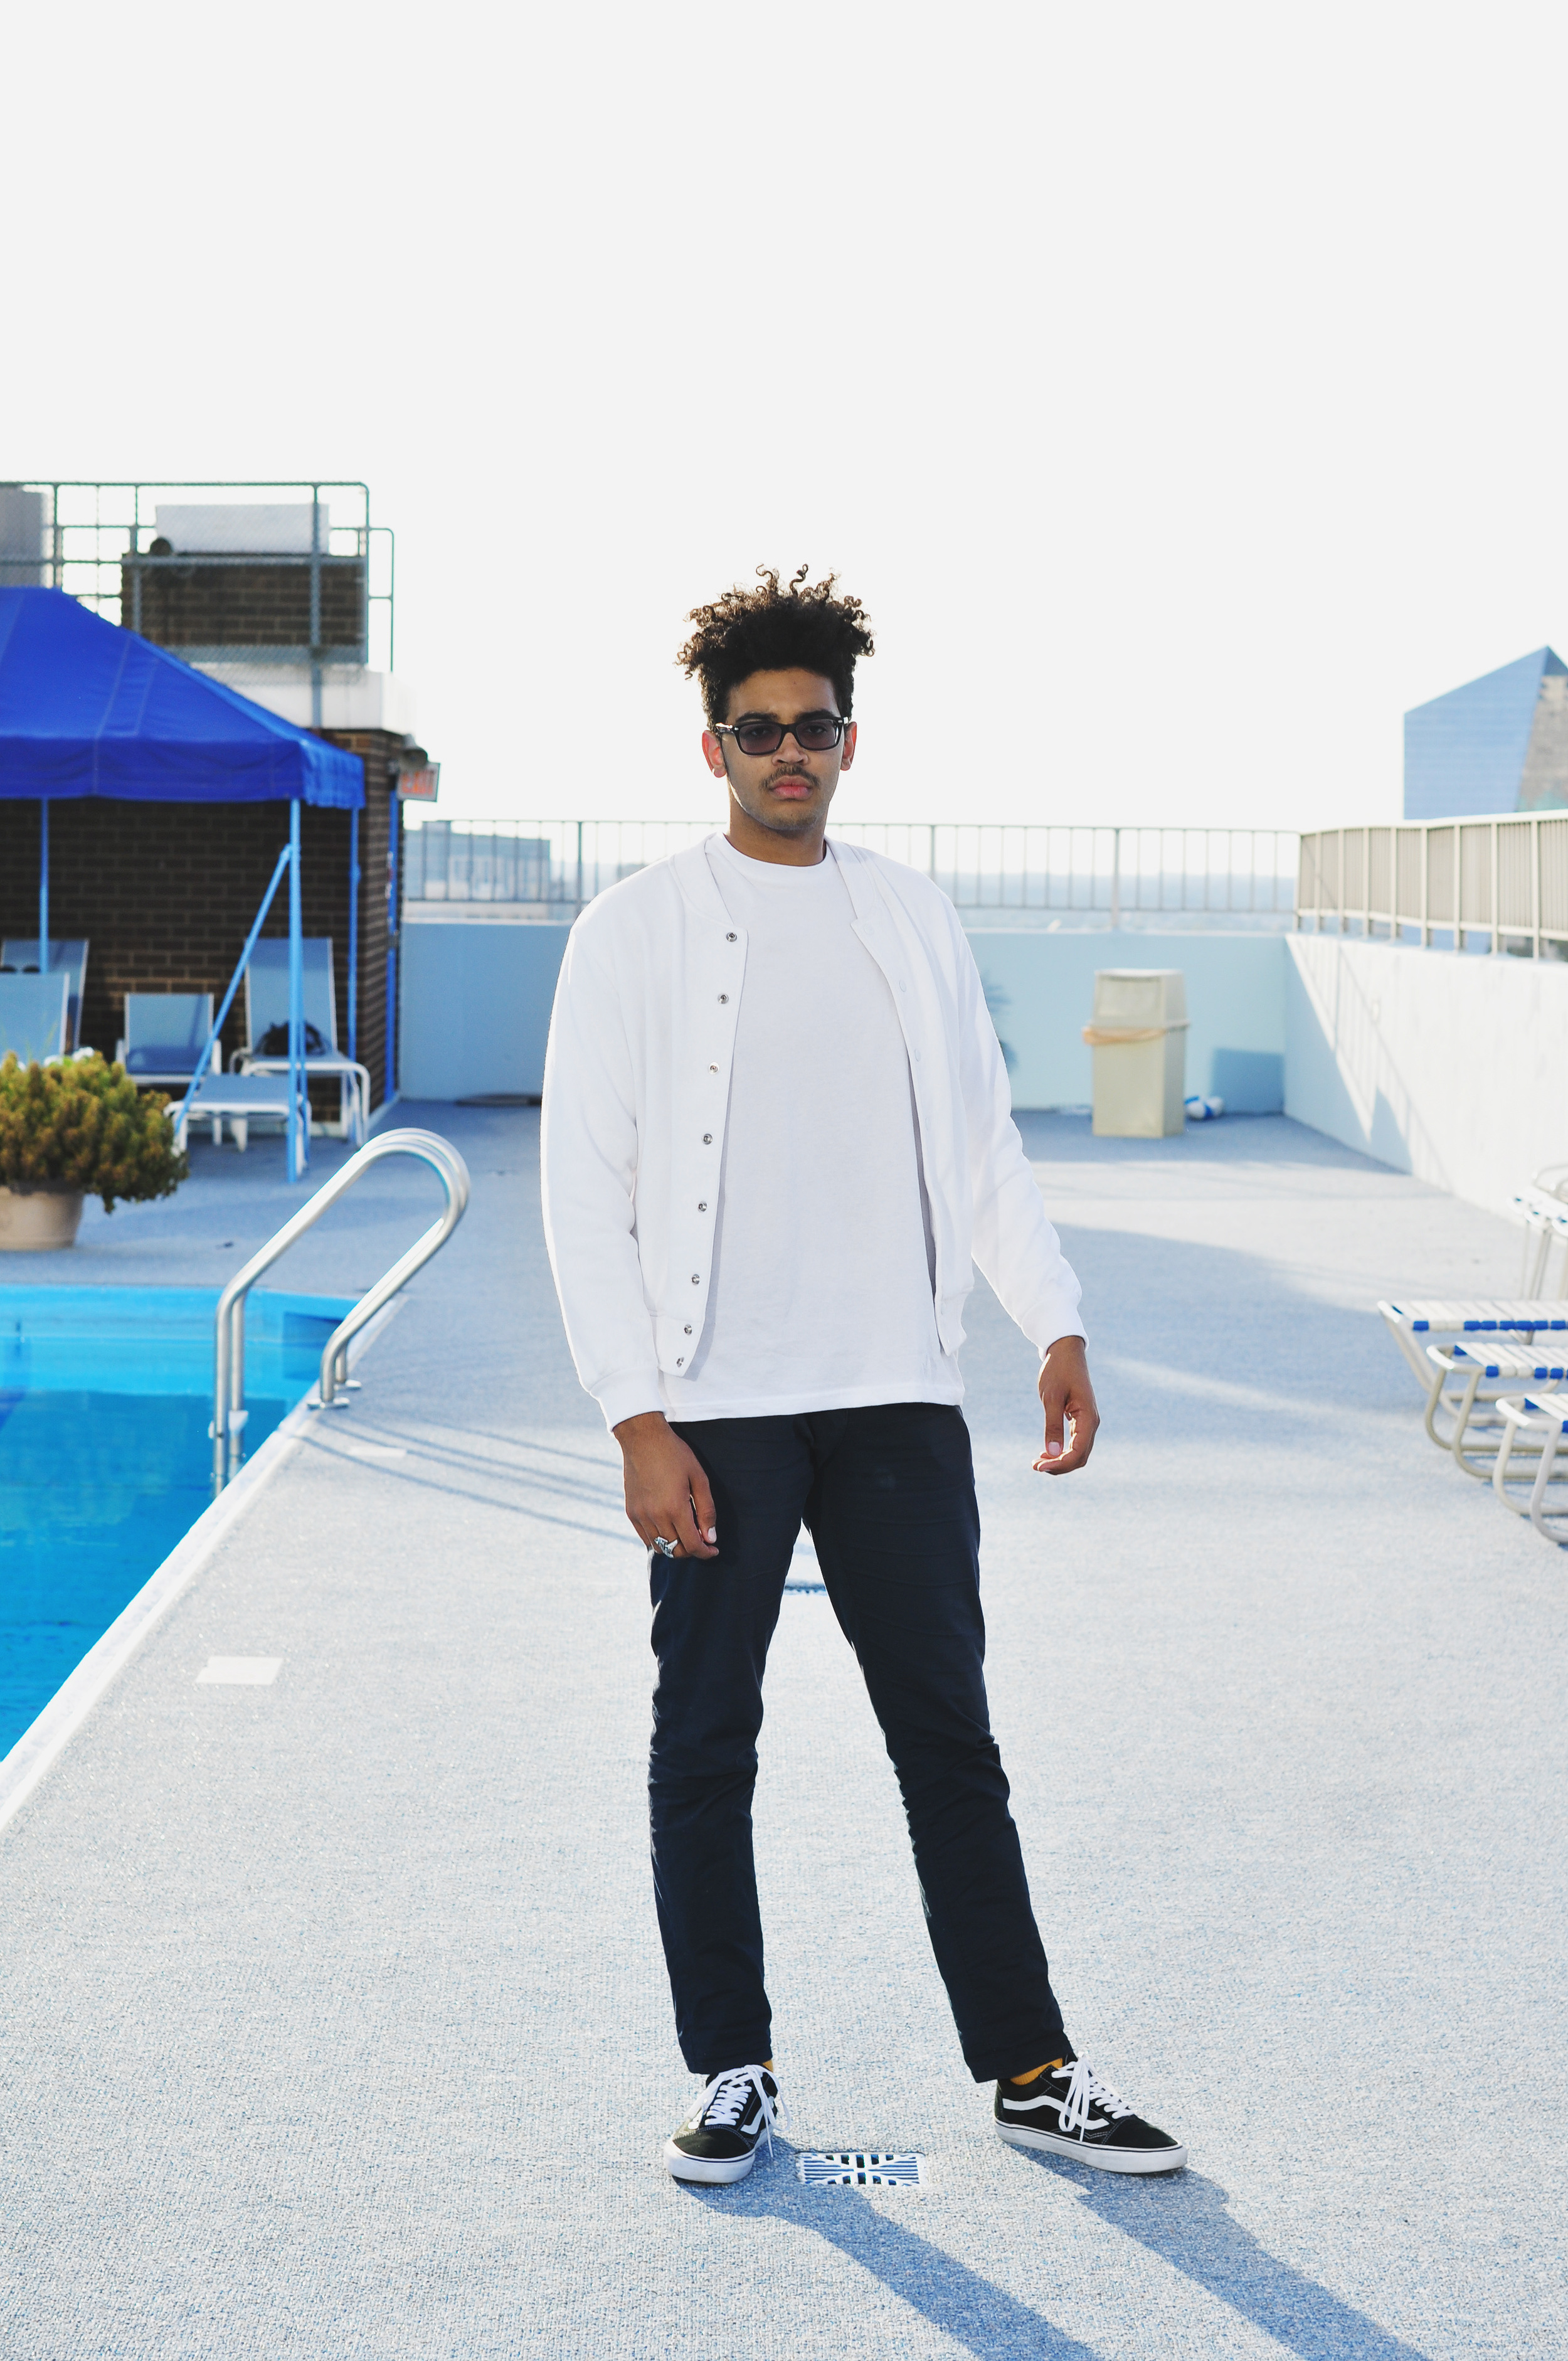 Michael Wolever for Thread Society. Featured Product: The Mens Club Jacket  (Photo by Shannon Adolt)